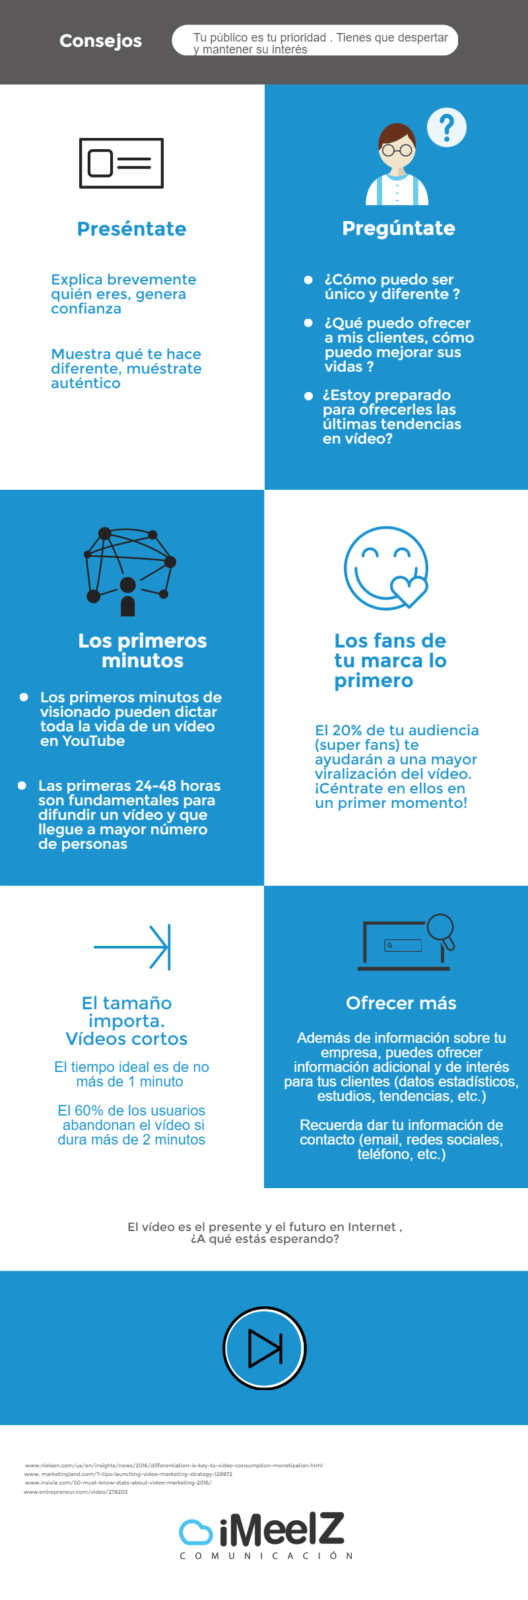 Datos relevantes sobre la creacion la realizacion de un video